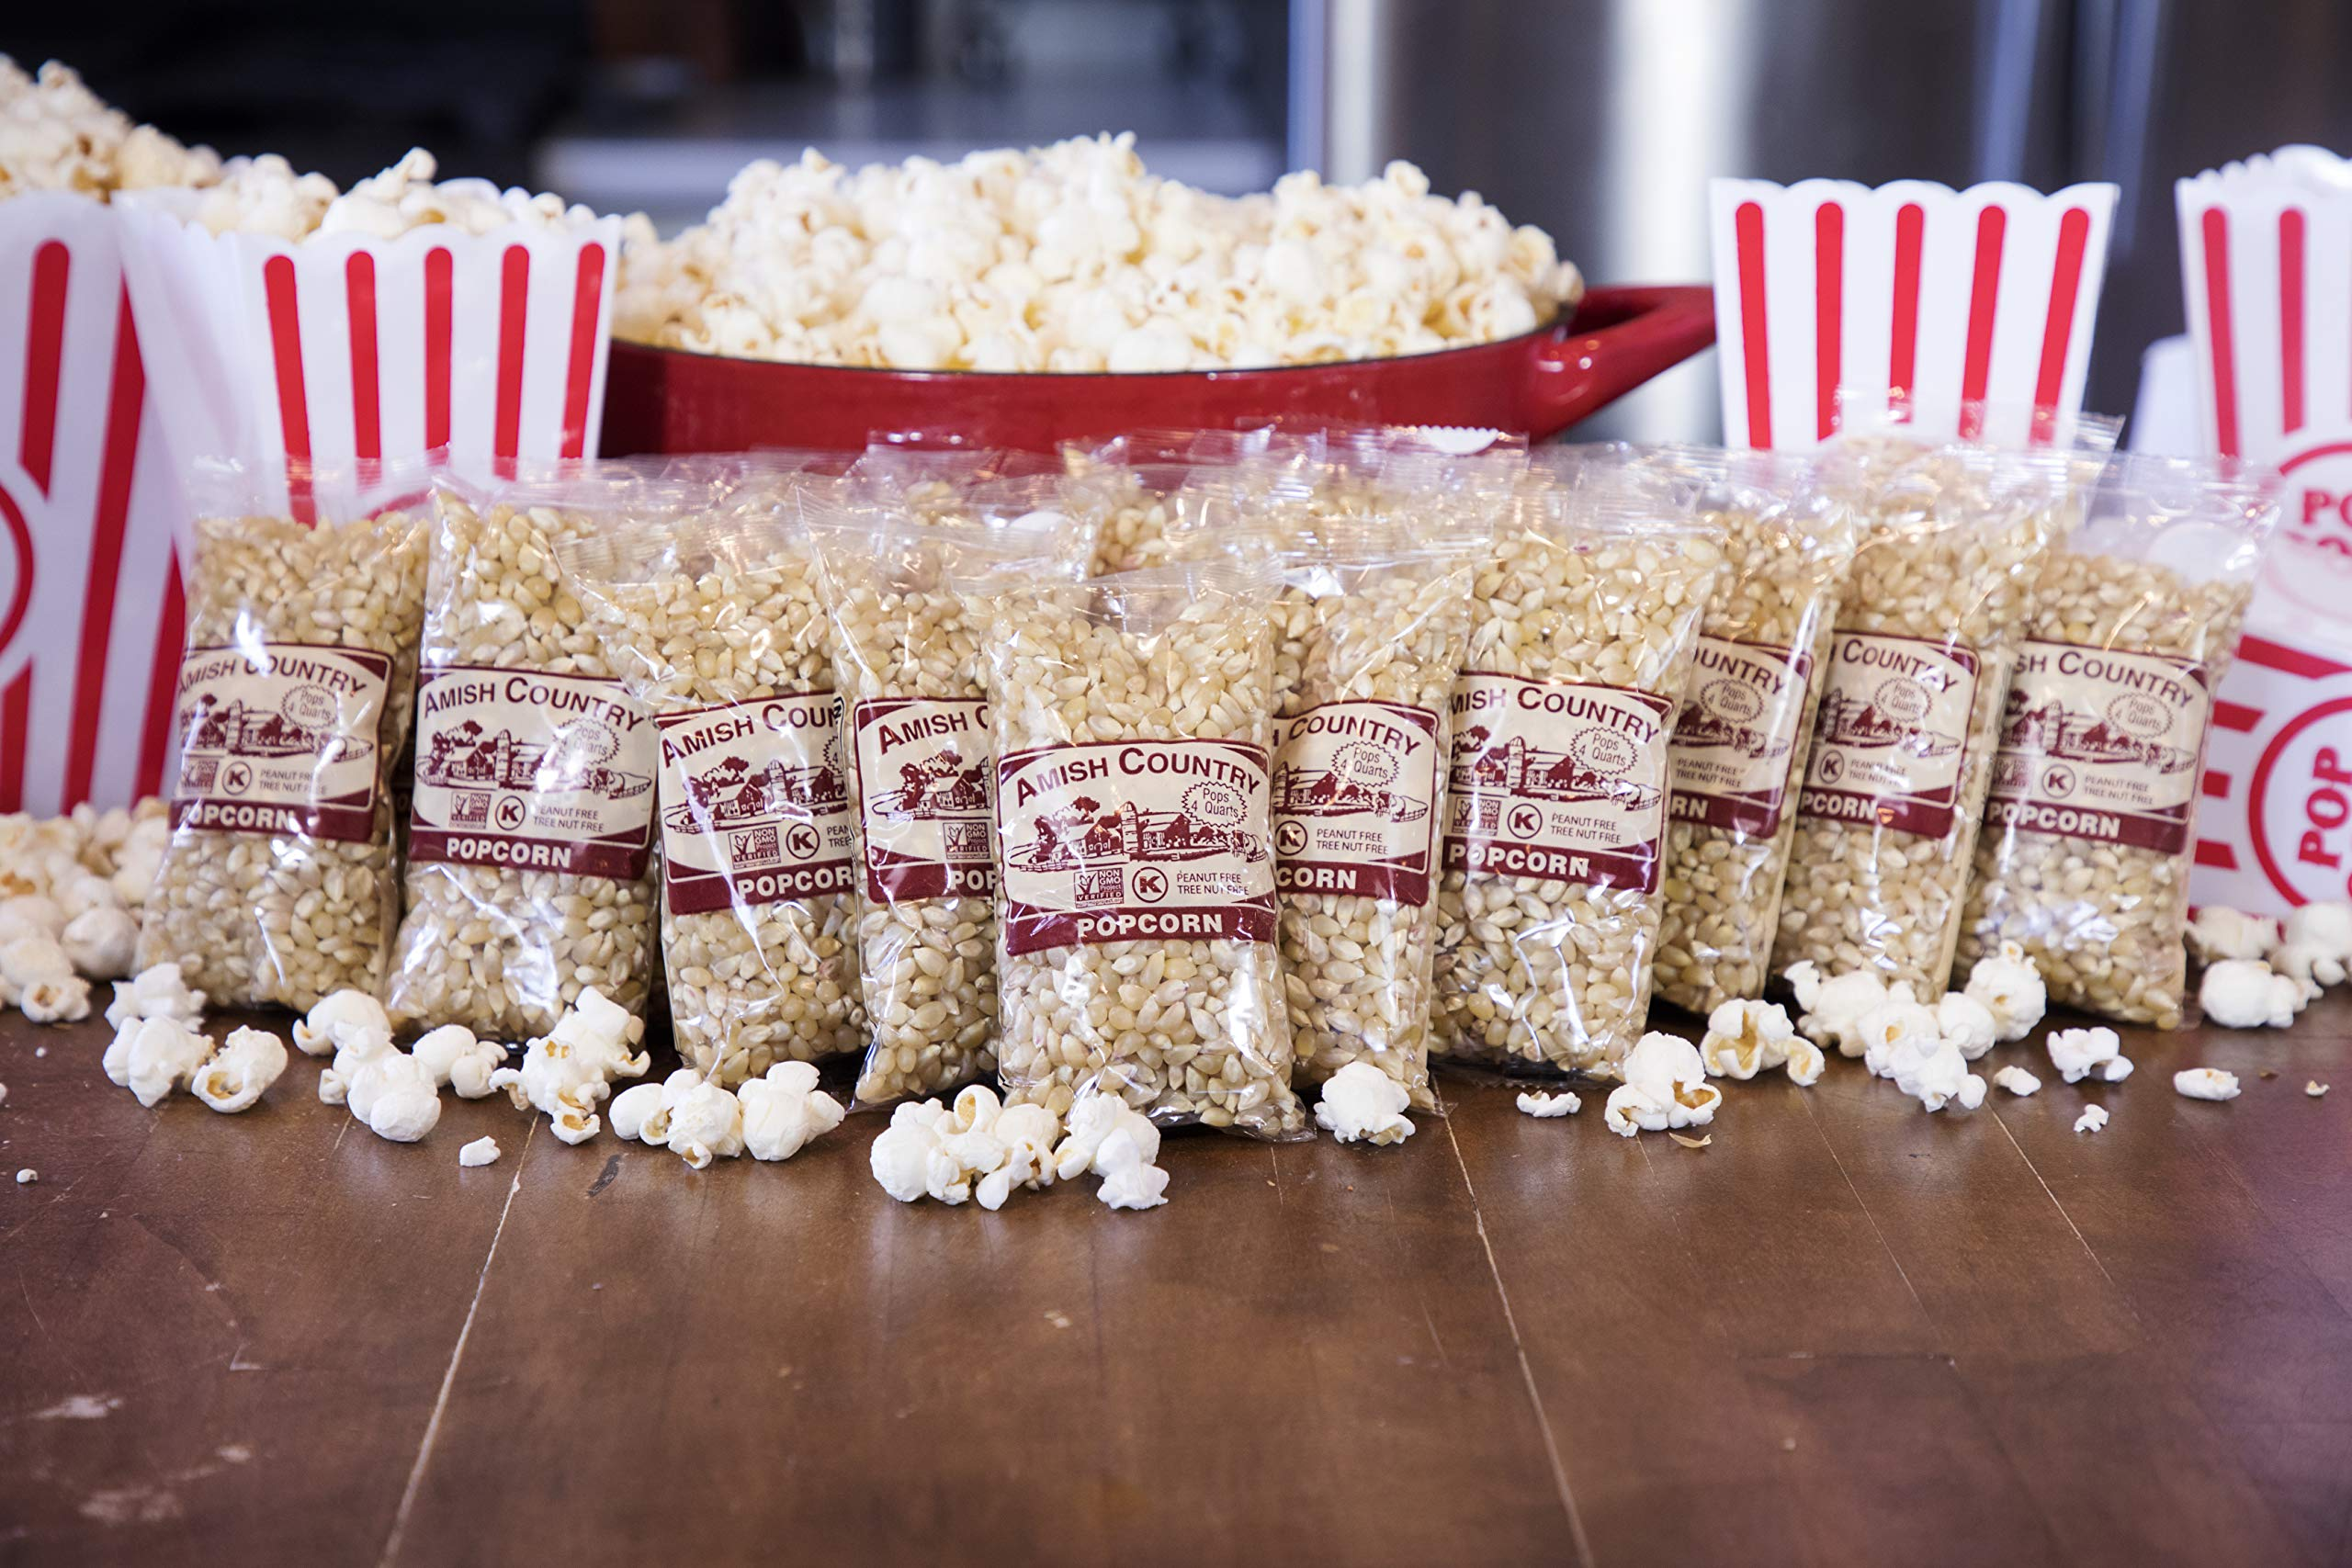 Amish Country Popcorn - Old Fashioned Baby White - (4 Ounce - 24 Bags) - Small & Tender Popcorn - With Recipe Guide by Amish Country Popcorn (Image #3)